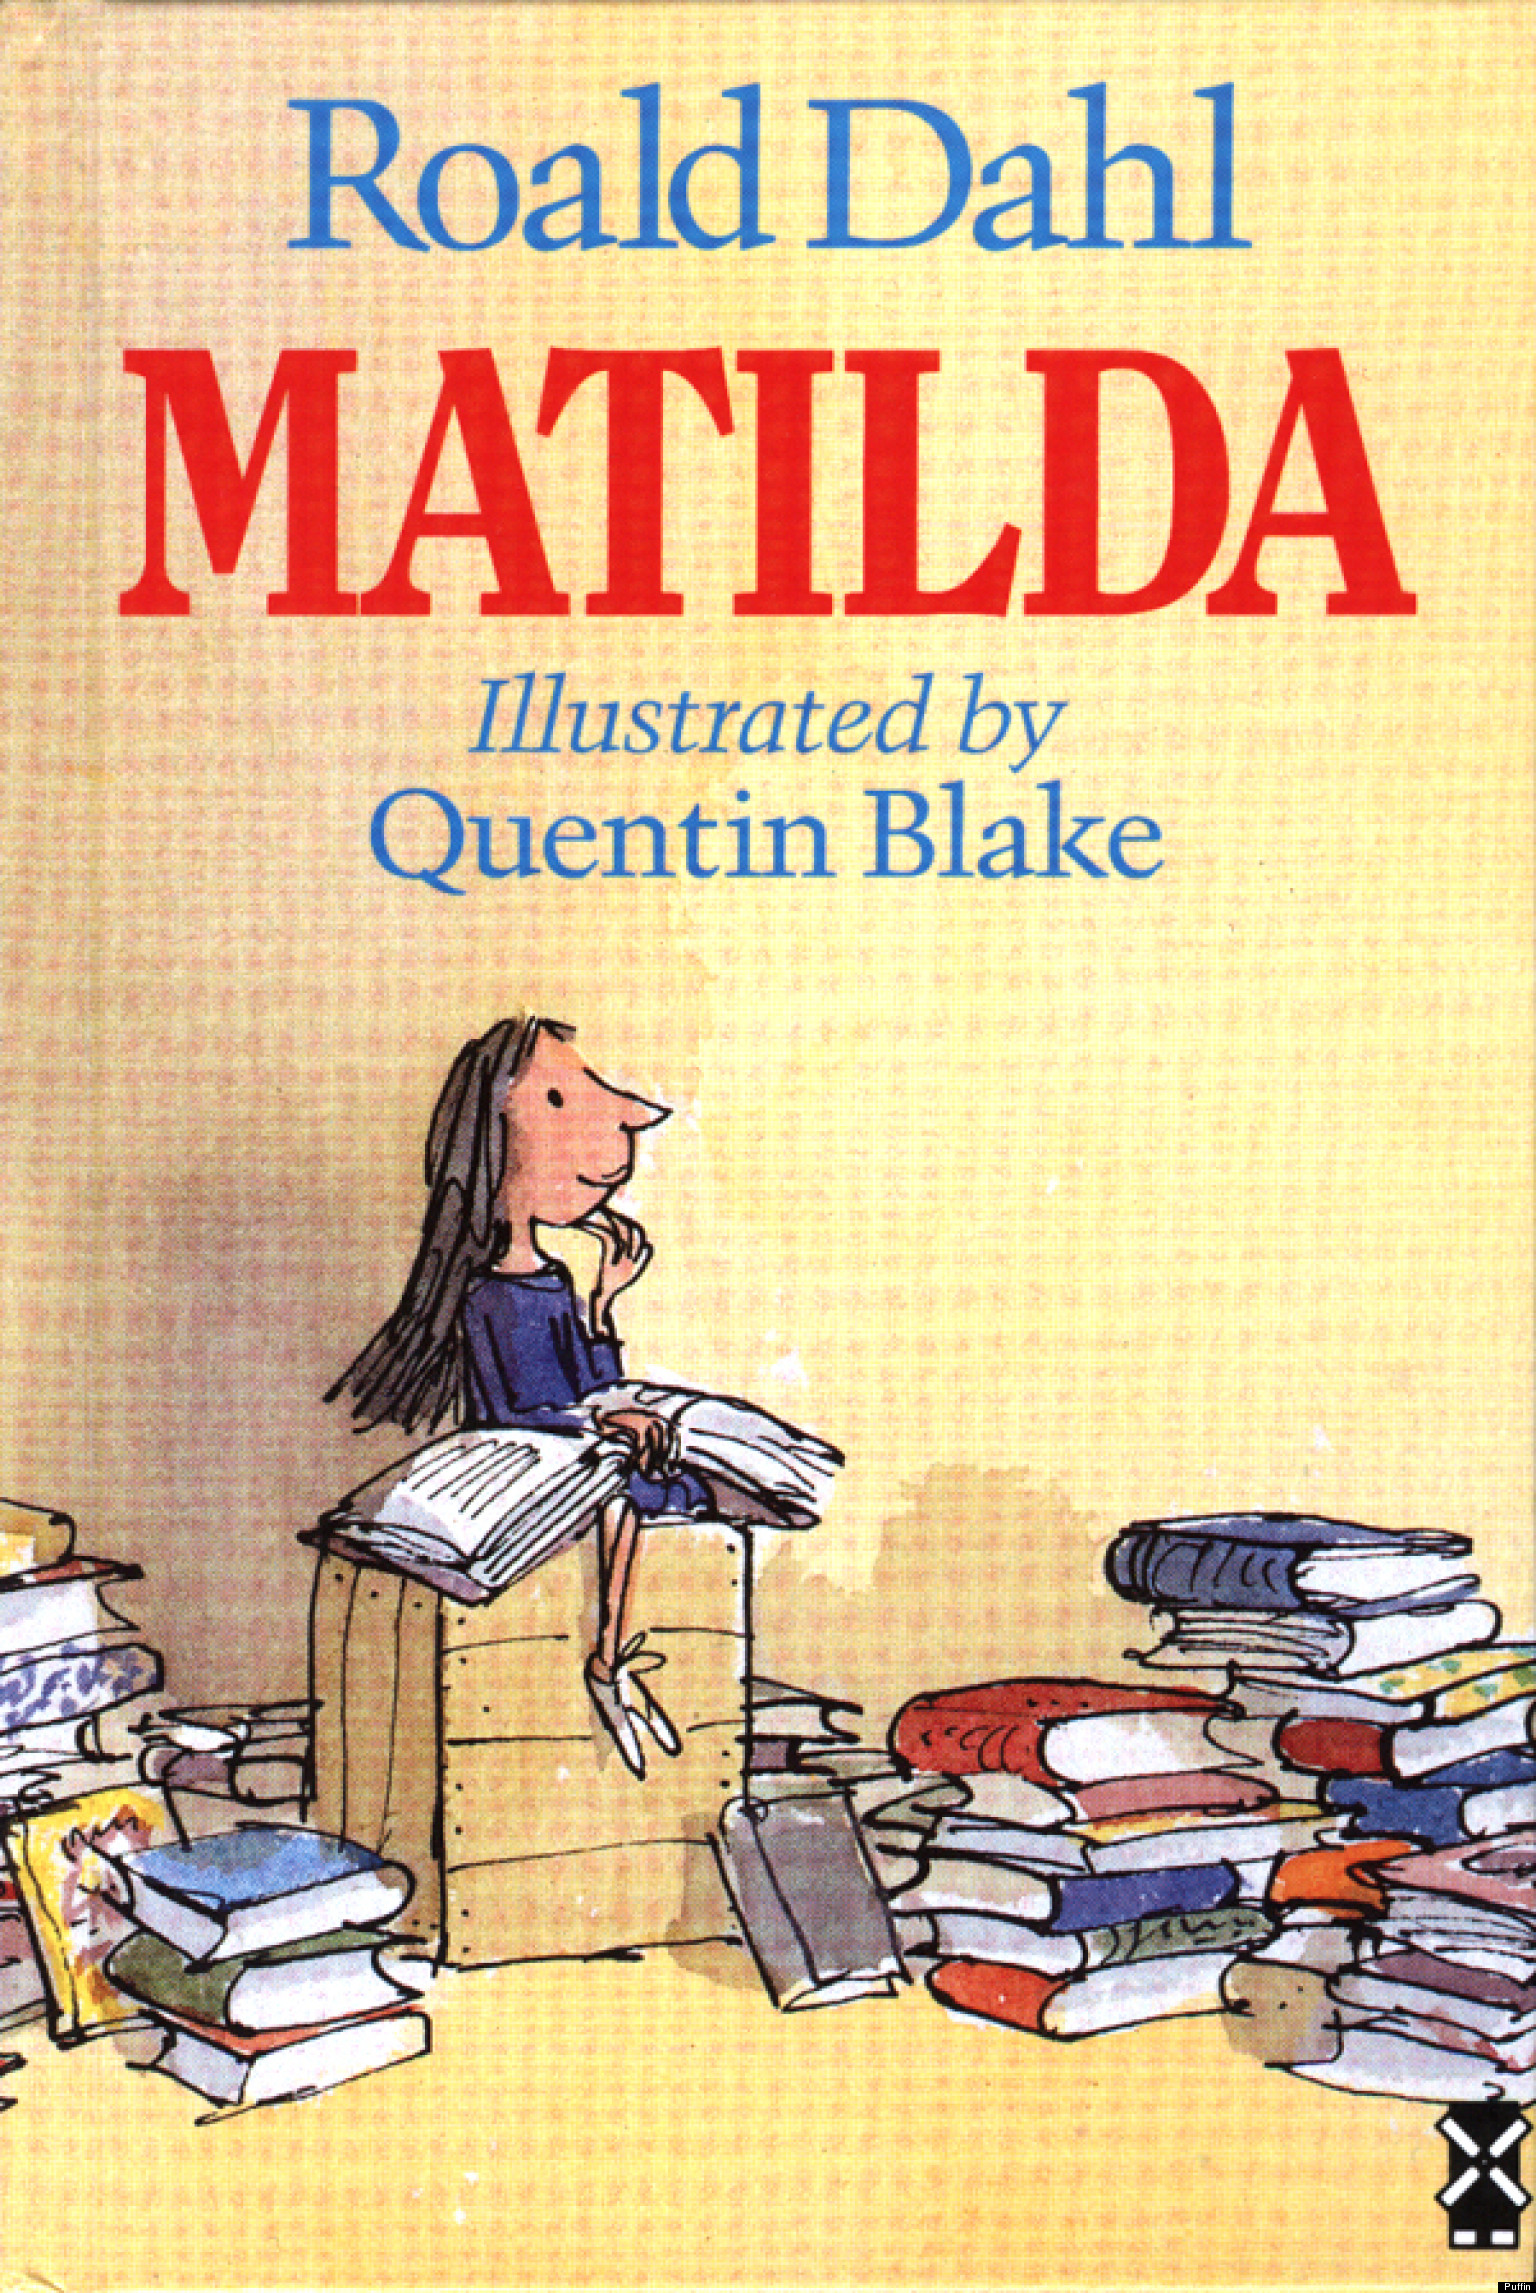 Book Cover Pictures Quotes : Roald dahl day wonderfully funny quotes from his